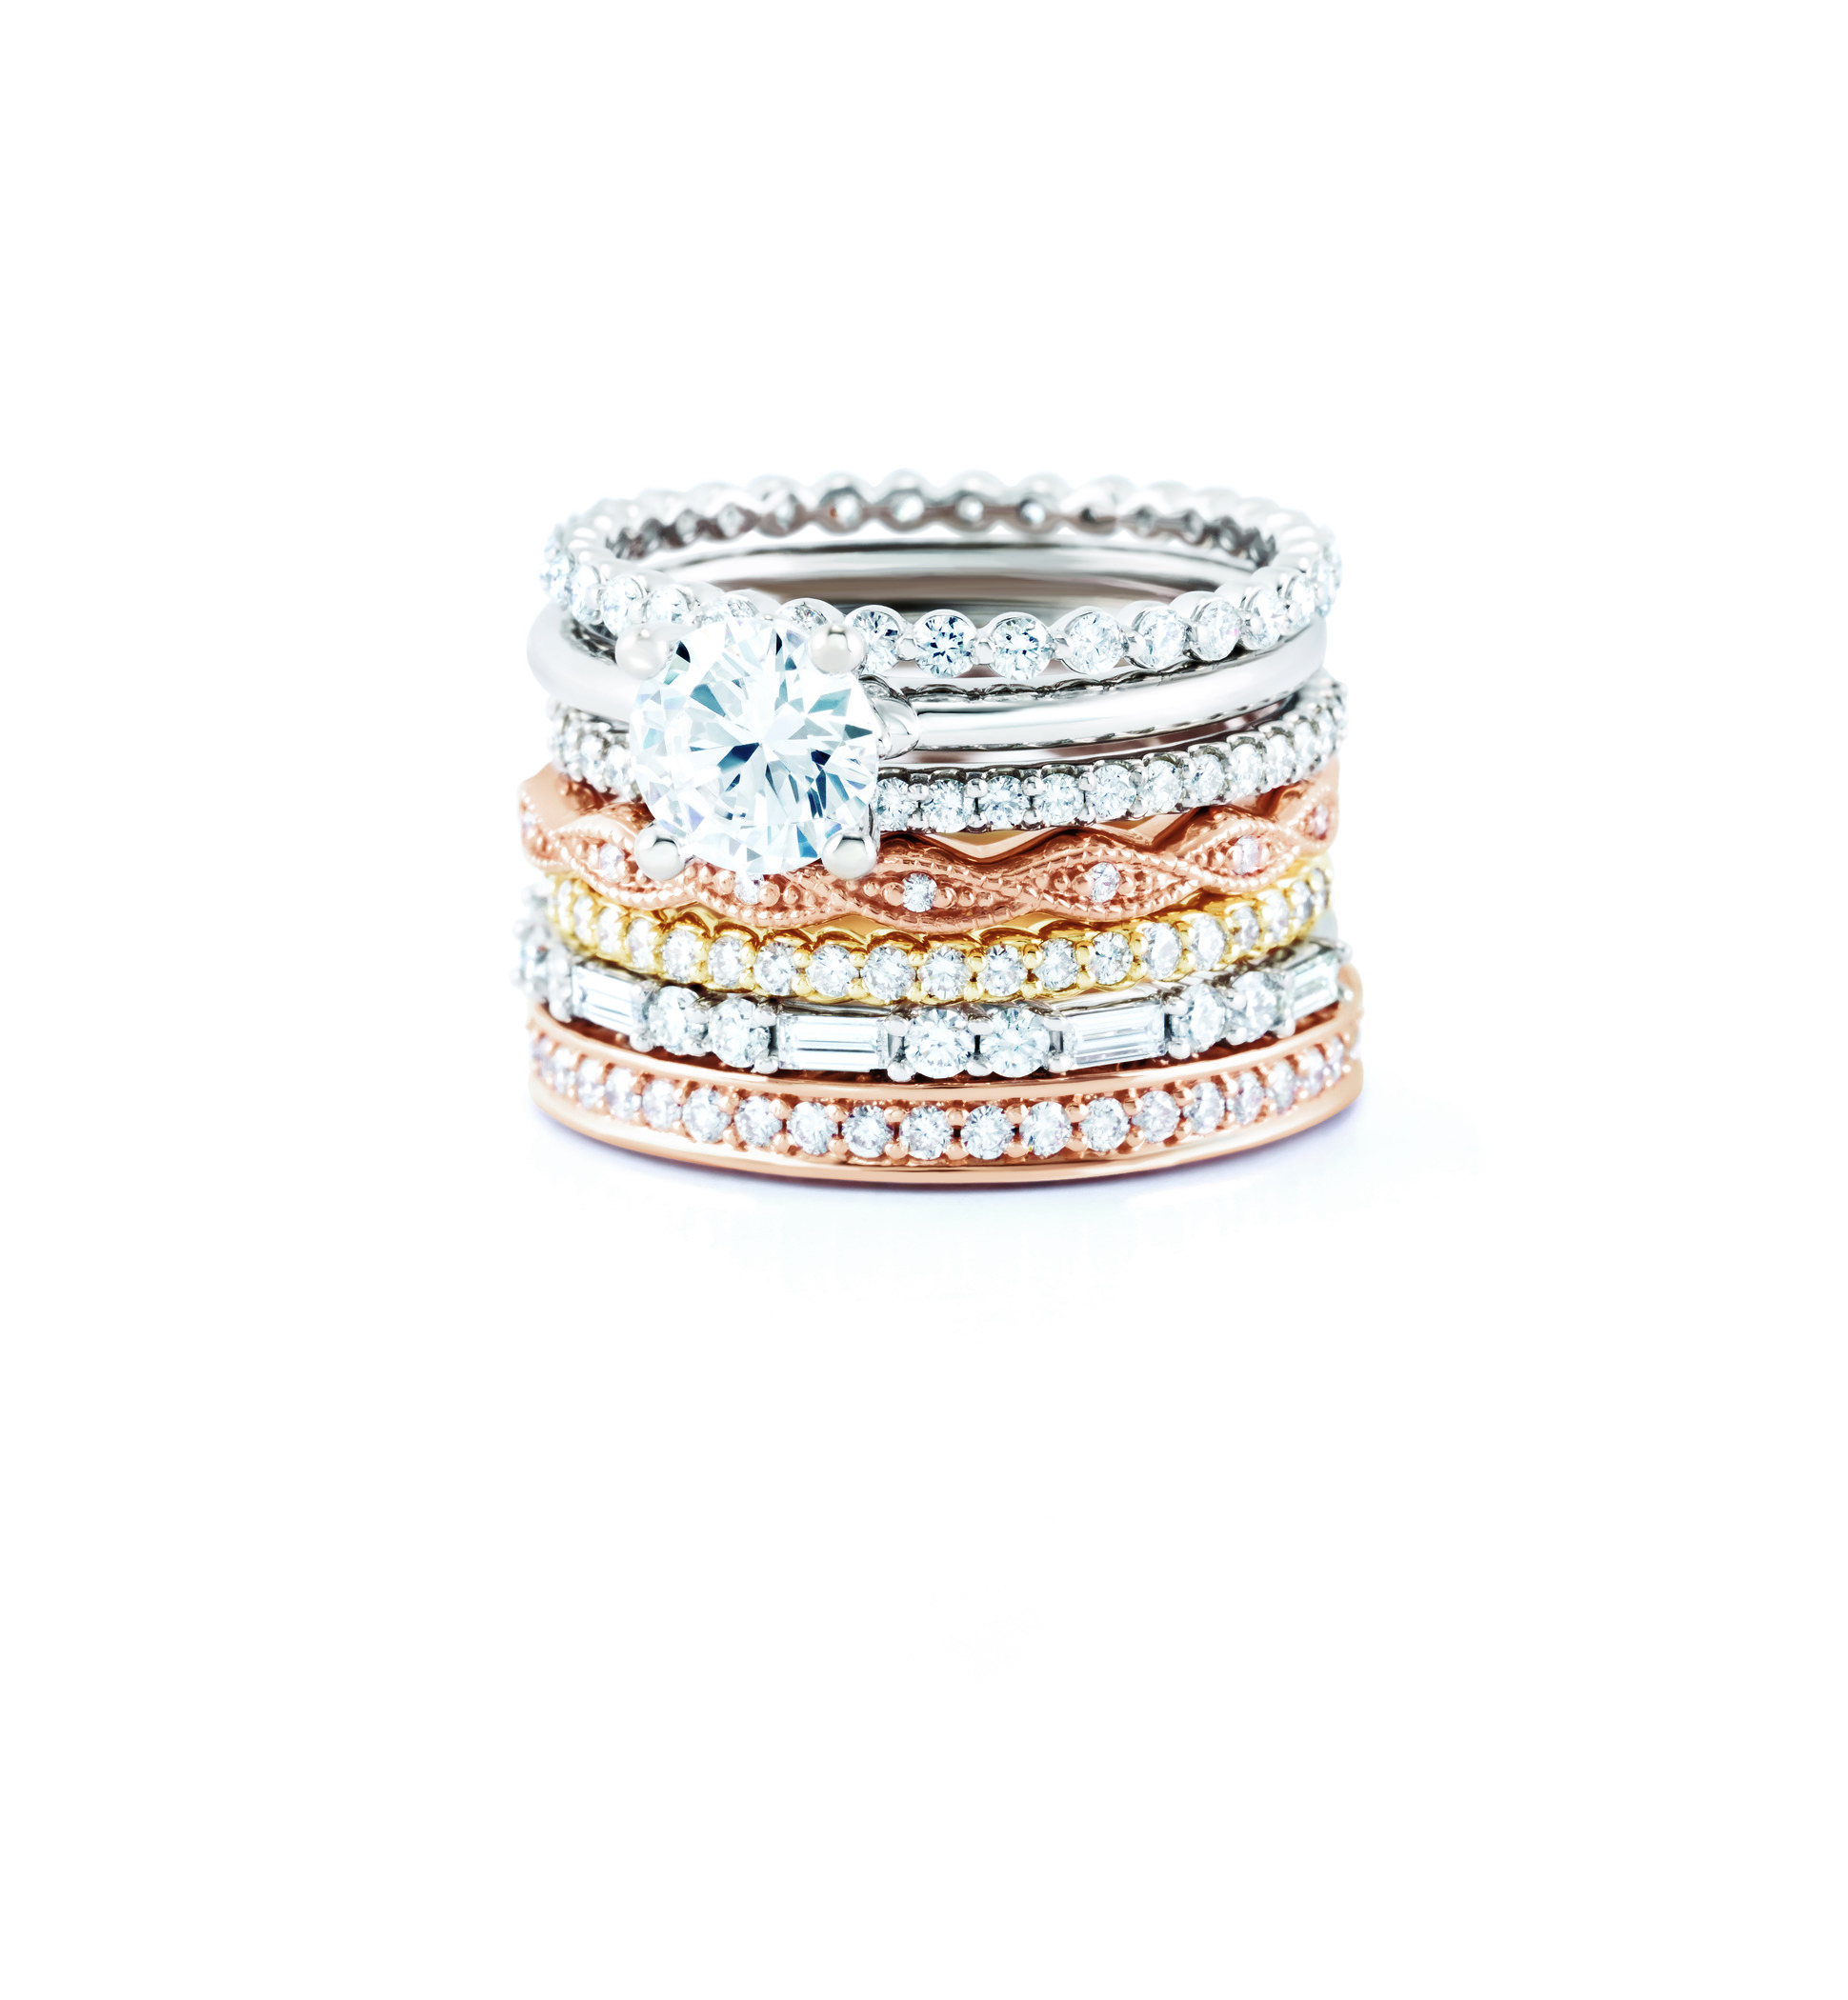 Wethington wedding bands